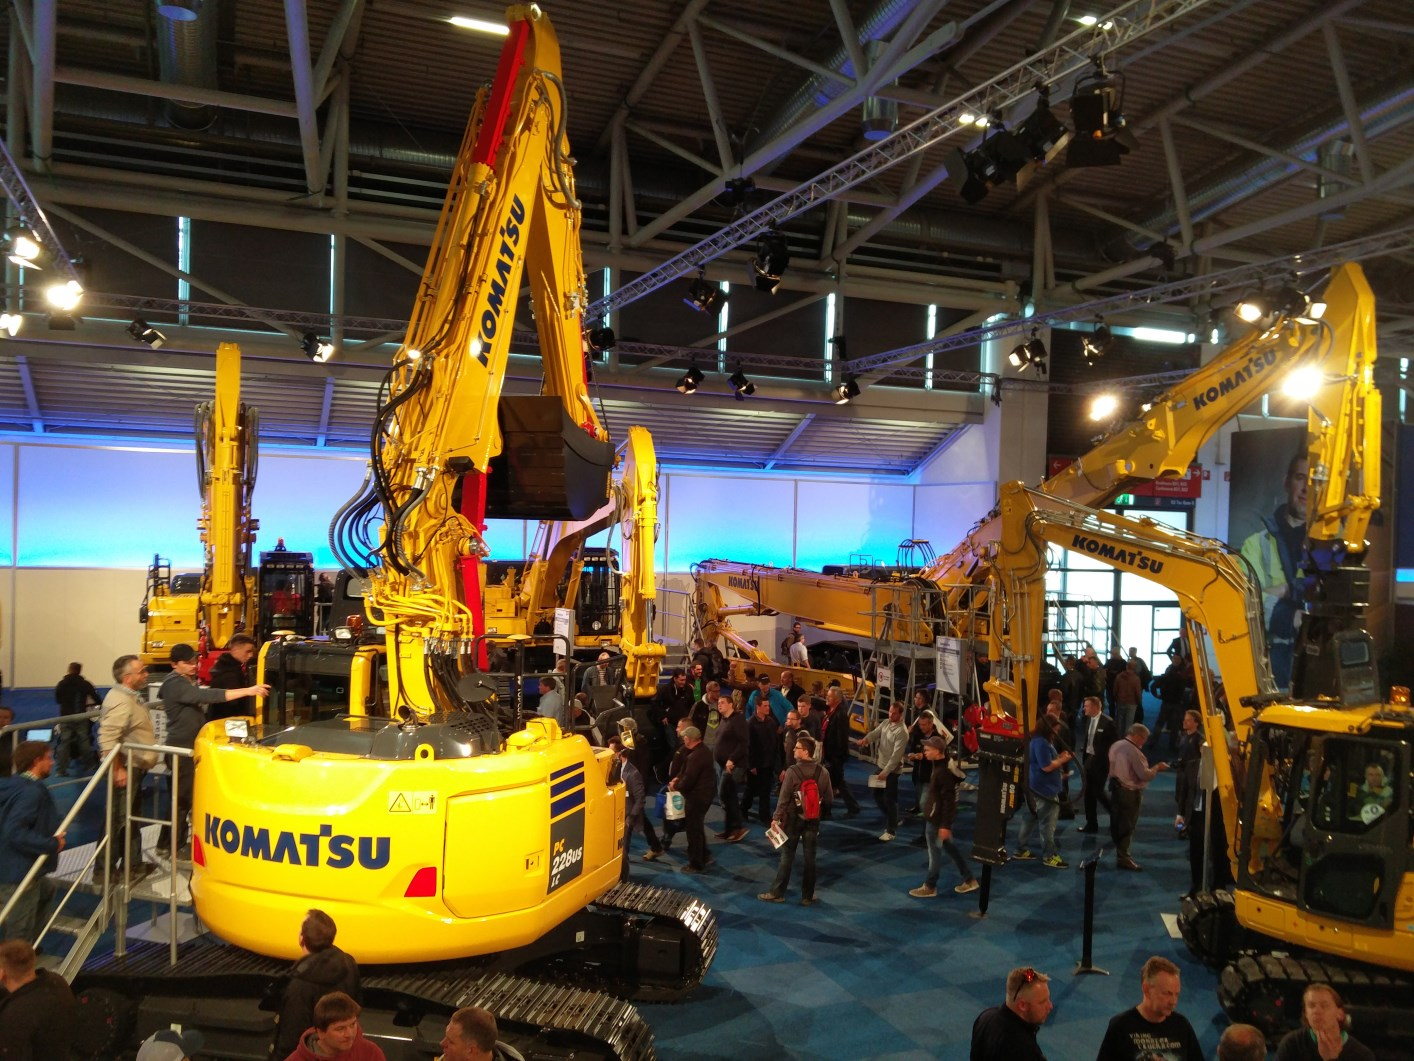 bauma 2016 in m nchen superlative for heavy machinery autoscout24 trucksblog international. Black Bedroom Furniture Sets. Home Design Ideas